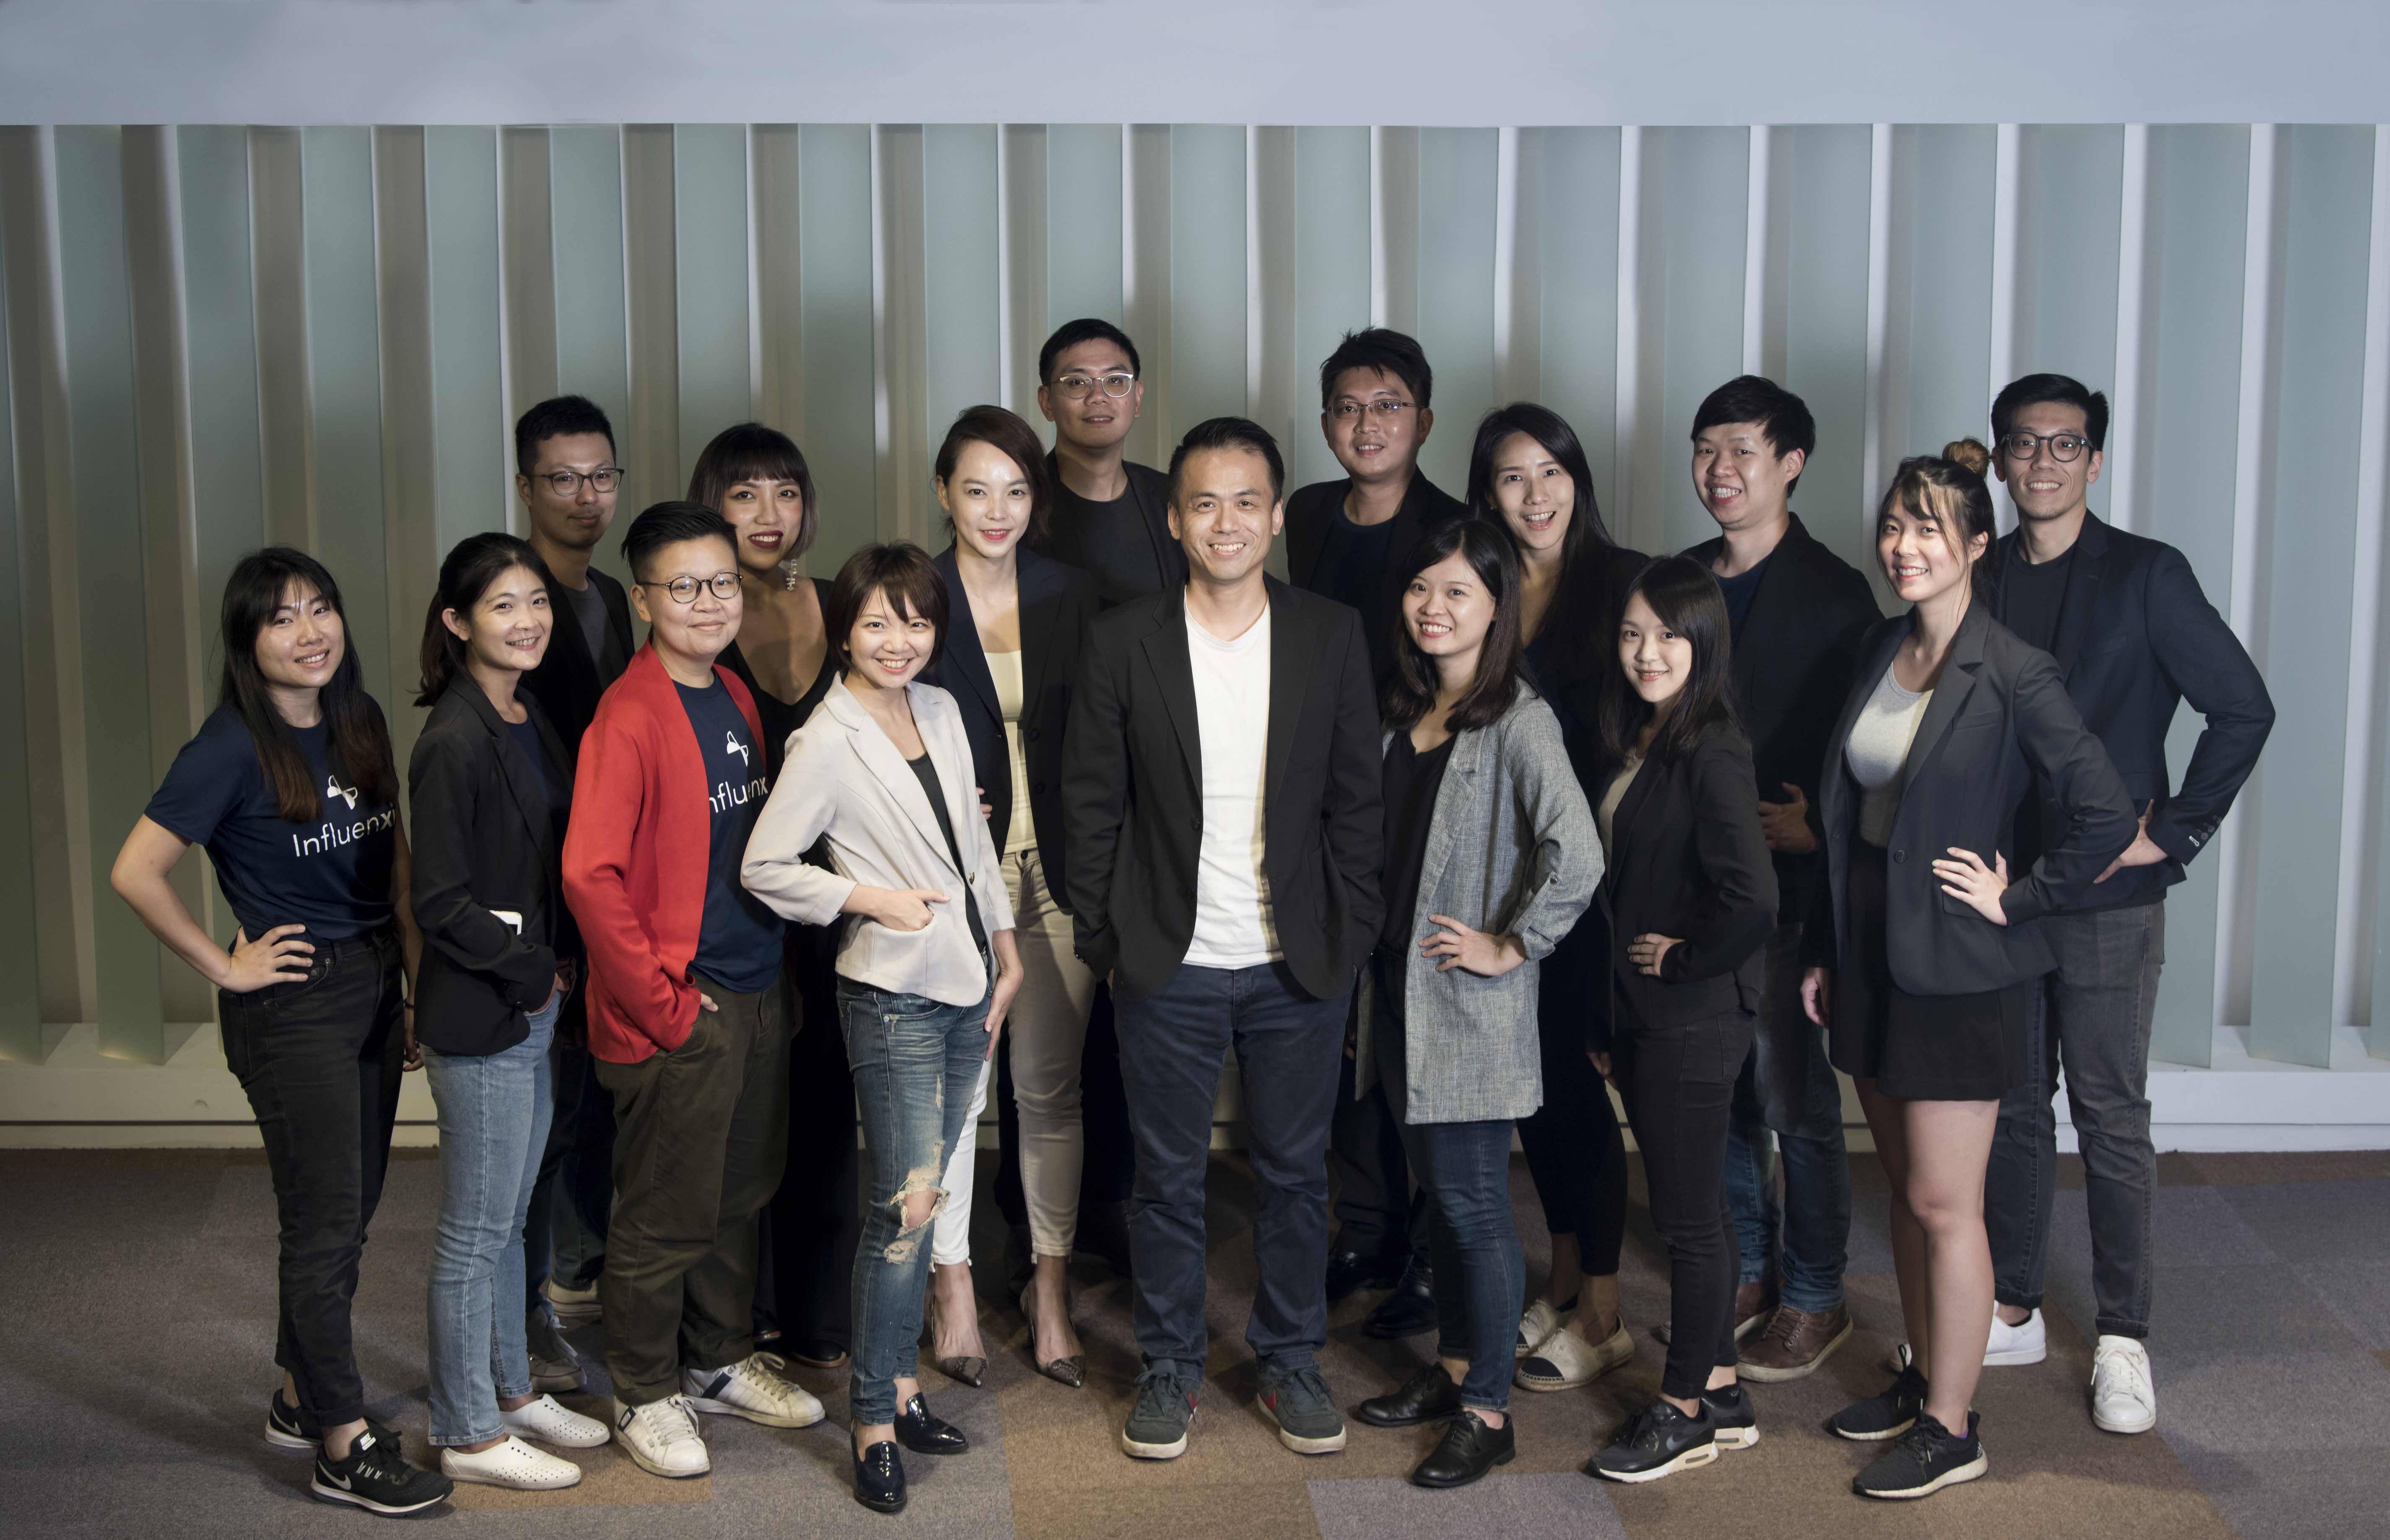 Influencer marketing startup Influenxio's team, with founder and CEO Allan Ko in the center